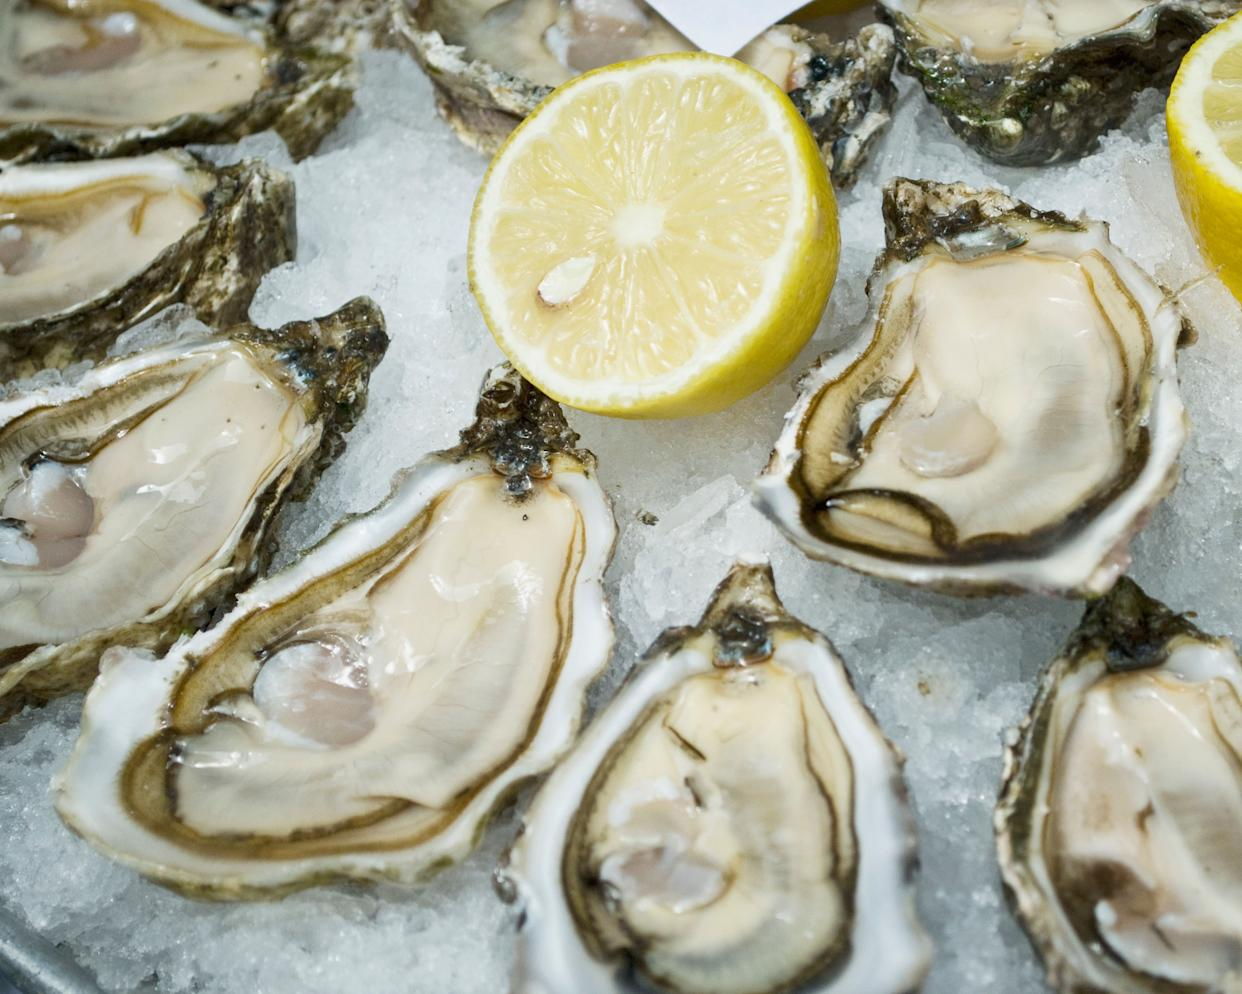 """The classic """"aphrodisiac"""" -- but does anyone know why? They're slimy and gross-looking and offend probably half of the population. <a href=""""http://ndb.nal.usda.gov/ndb/foods/show/4630?fg=&man=&lfacet=&format=&count=&max=25&offset=&sort=&qlookup=oysters"""" rel=""""nofollow noopener"""" target=""""_blank"""" data-ylk=""""slk:Oysters"""" class=""""link rapid-noclick-resp"""">Oysters</a> are high in zinc, and a deficiency in zinc has been <a href=""""http://www.livestrong.com/article/421465-zinc-testosterone/"""" rel=""""nofollow noopener"""" target=""""_blank"""" data-ylk=""""slk:linked"""" class=""""link rapid-noclick-resp"""">linked</a> to lower testosterone levels, but research isn't conclusive that zinc actually increases your sex drive. Zinc and testosterone aside, do these squishy, ugly little guys make you think """"sex?"""""""